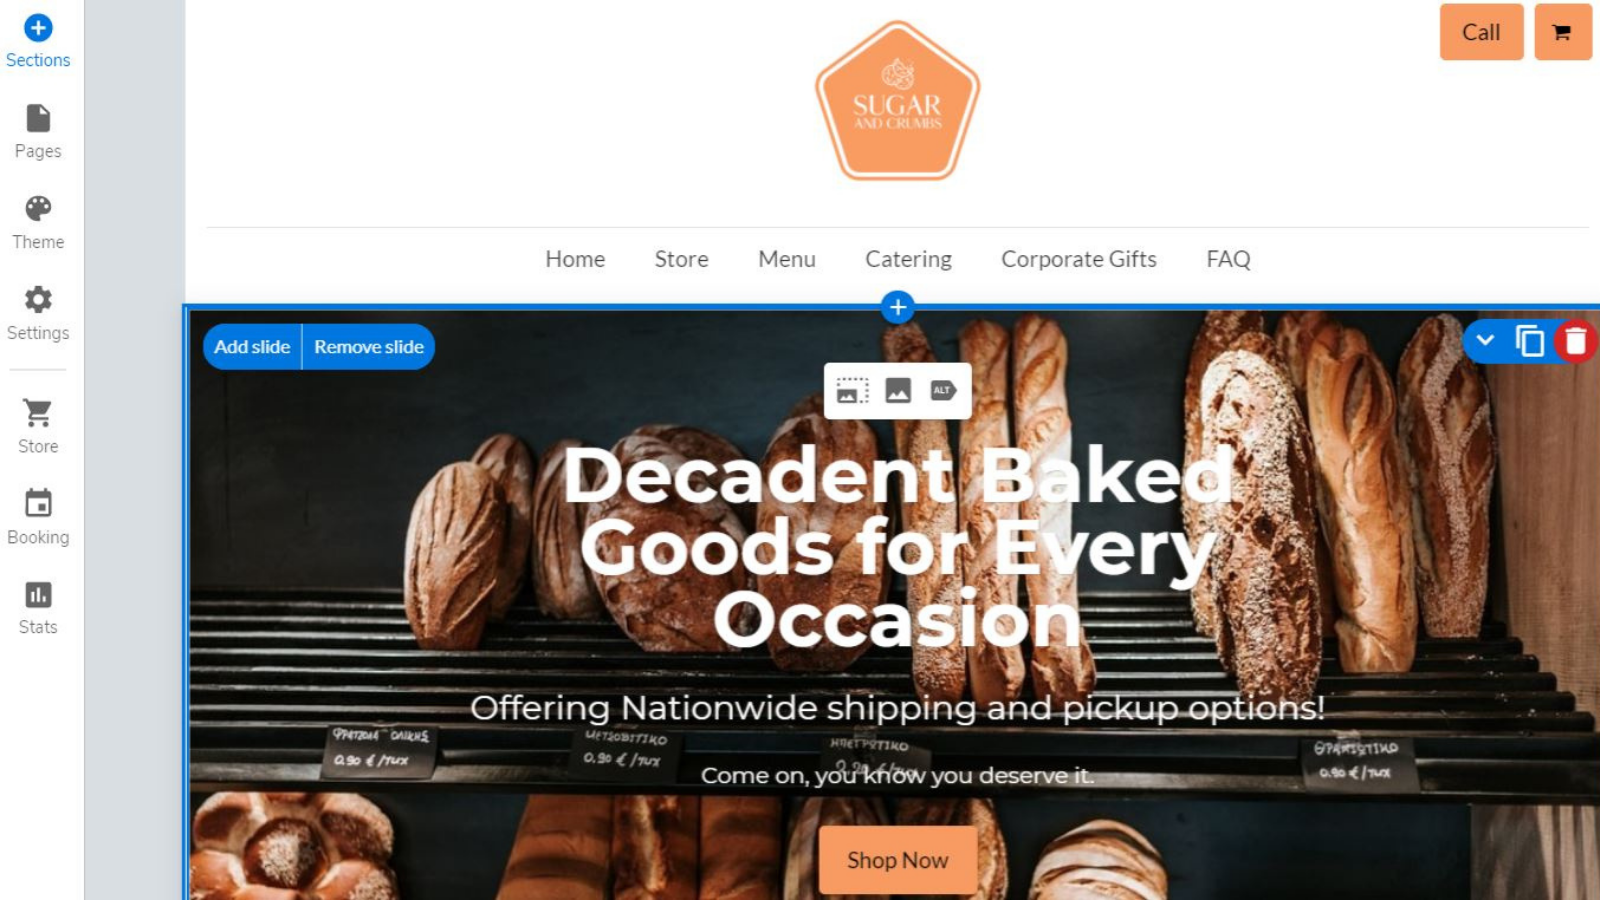 Build your very own branded ecommerce website.